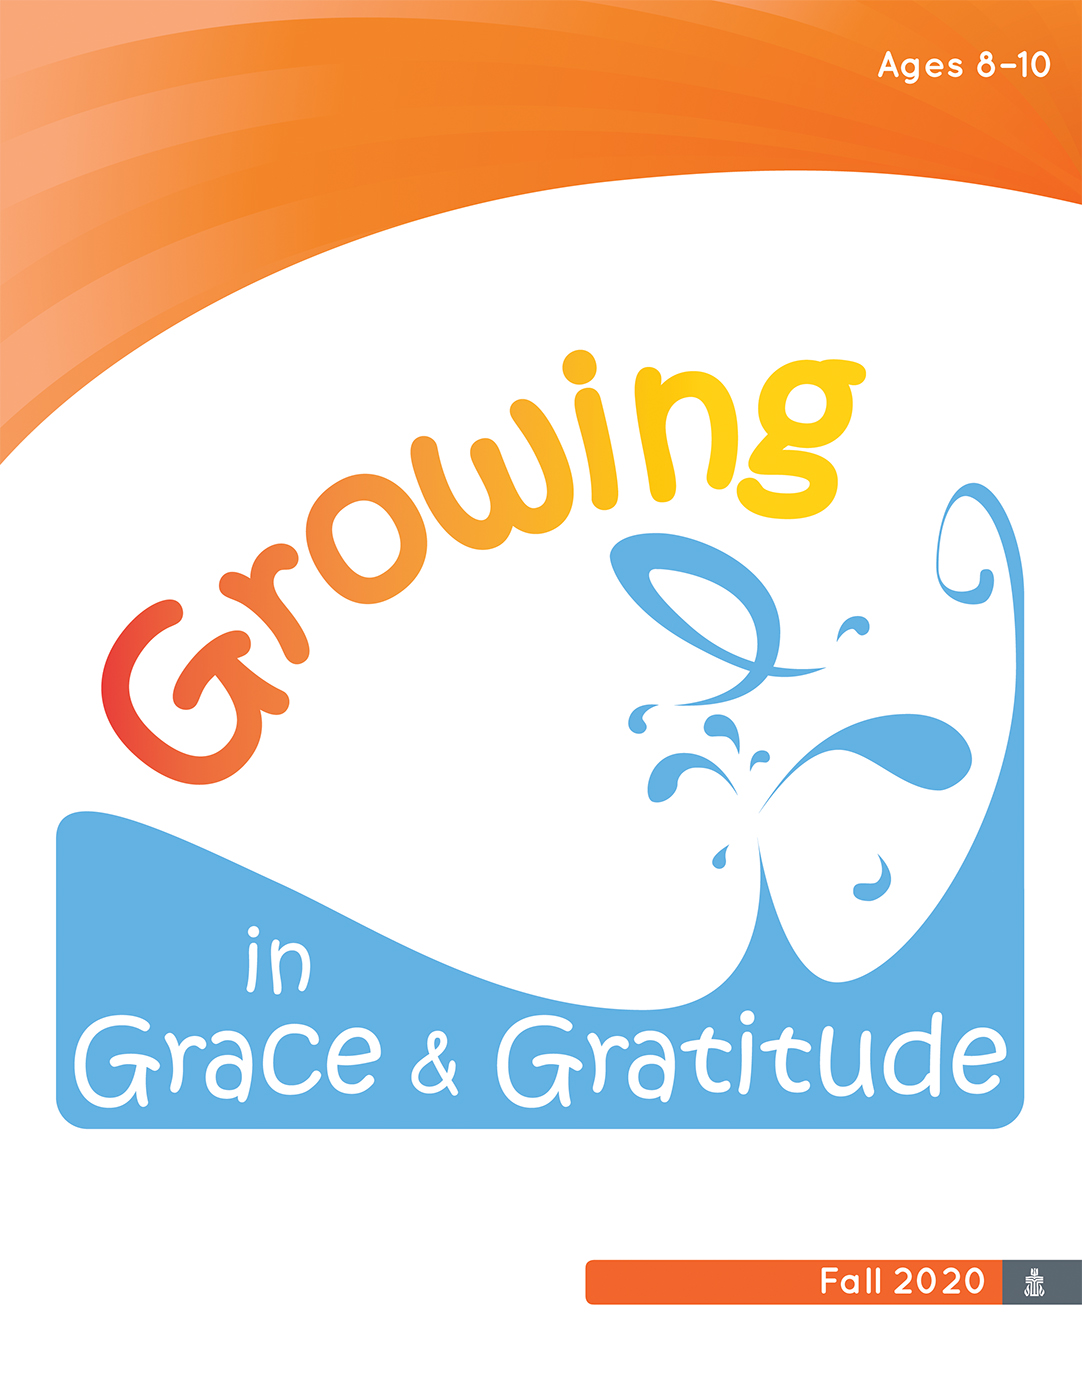 Growing in Grace & Gratitude Ages 8-10, Leader Material